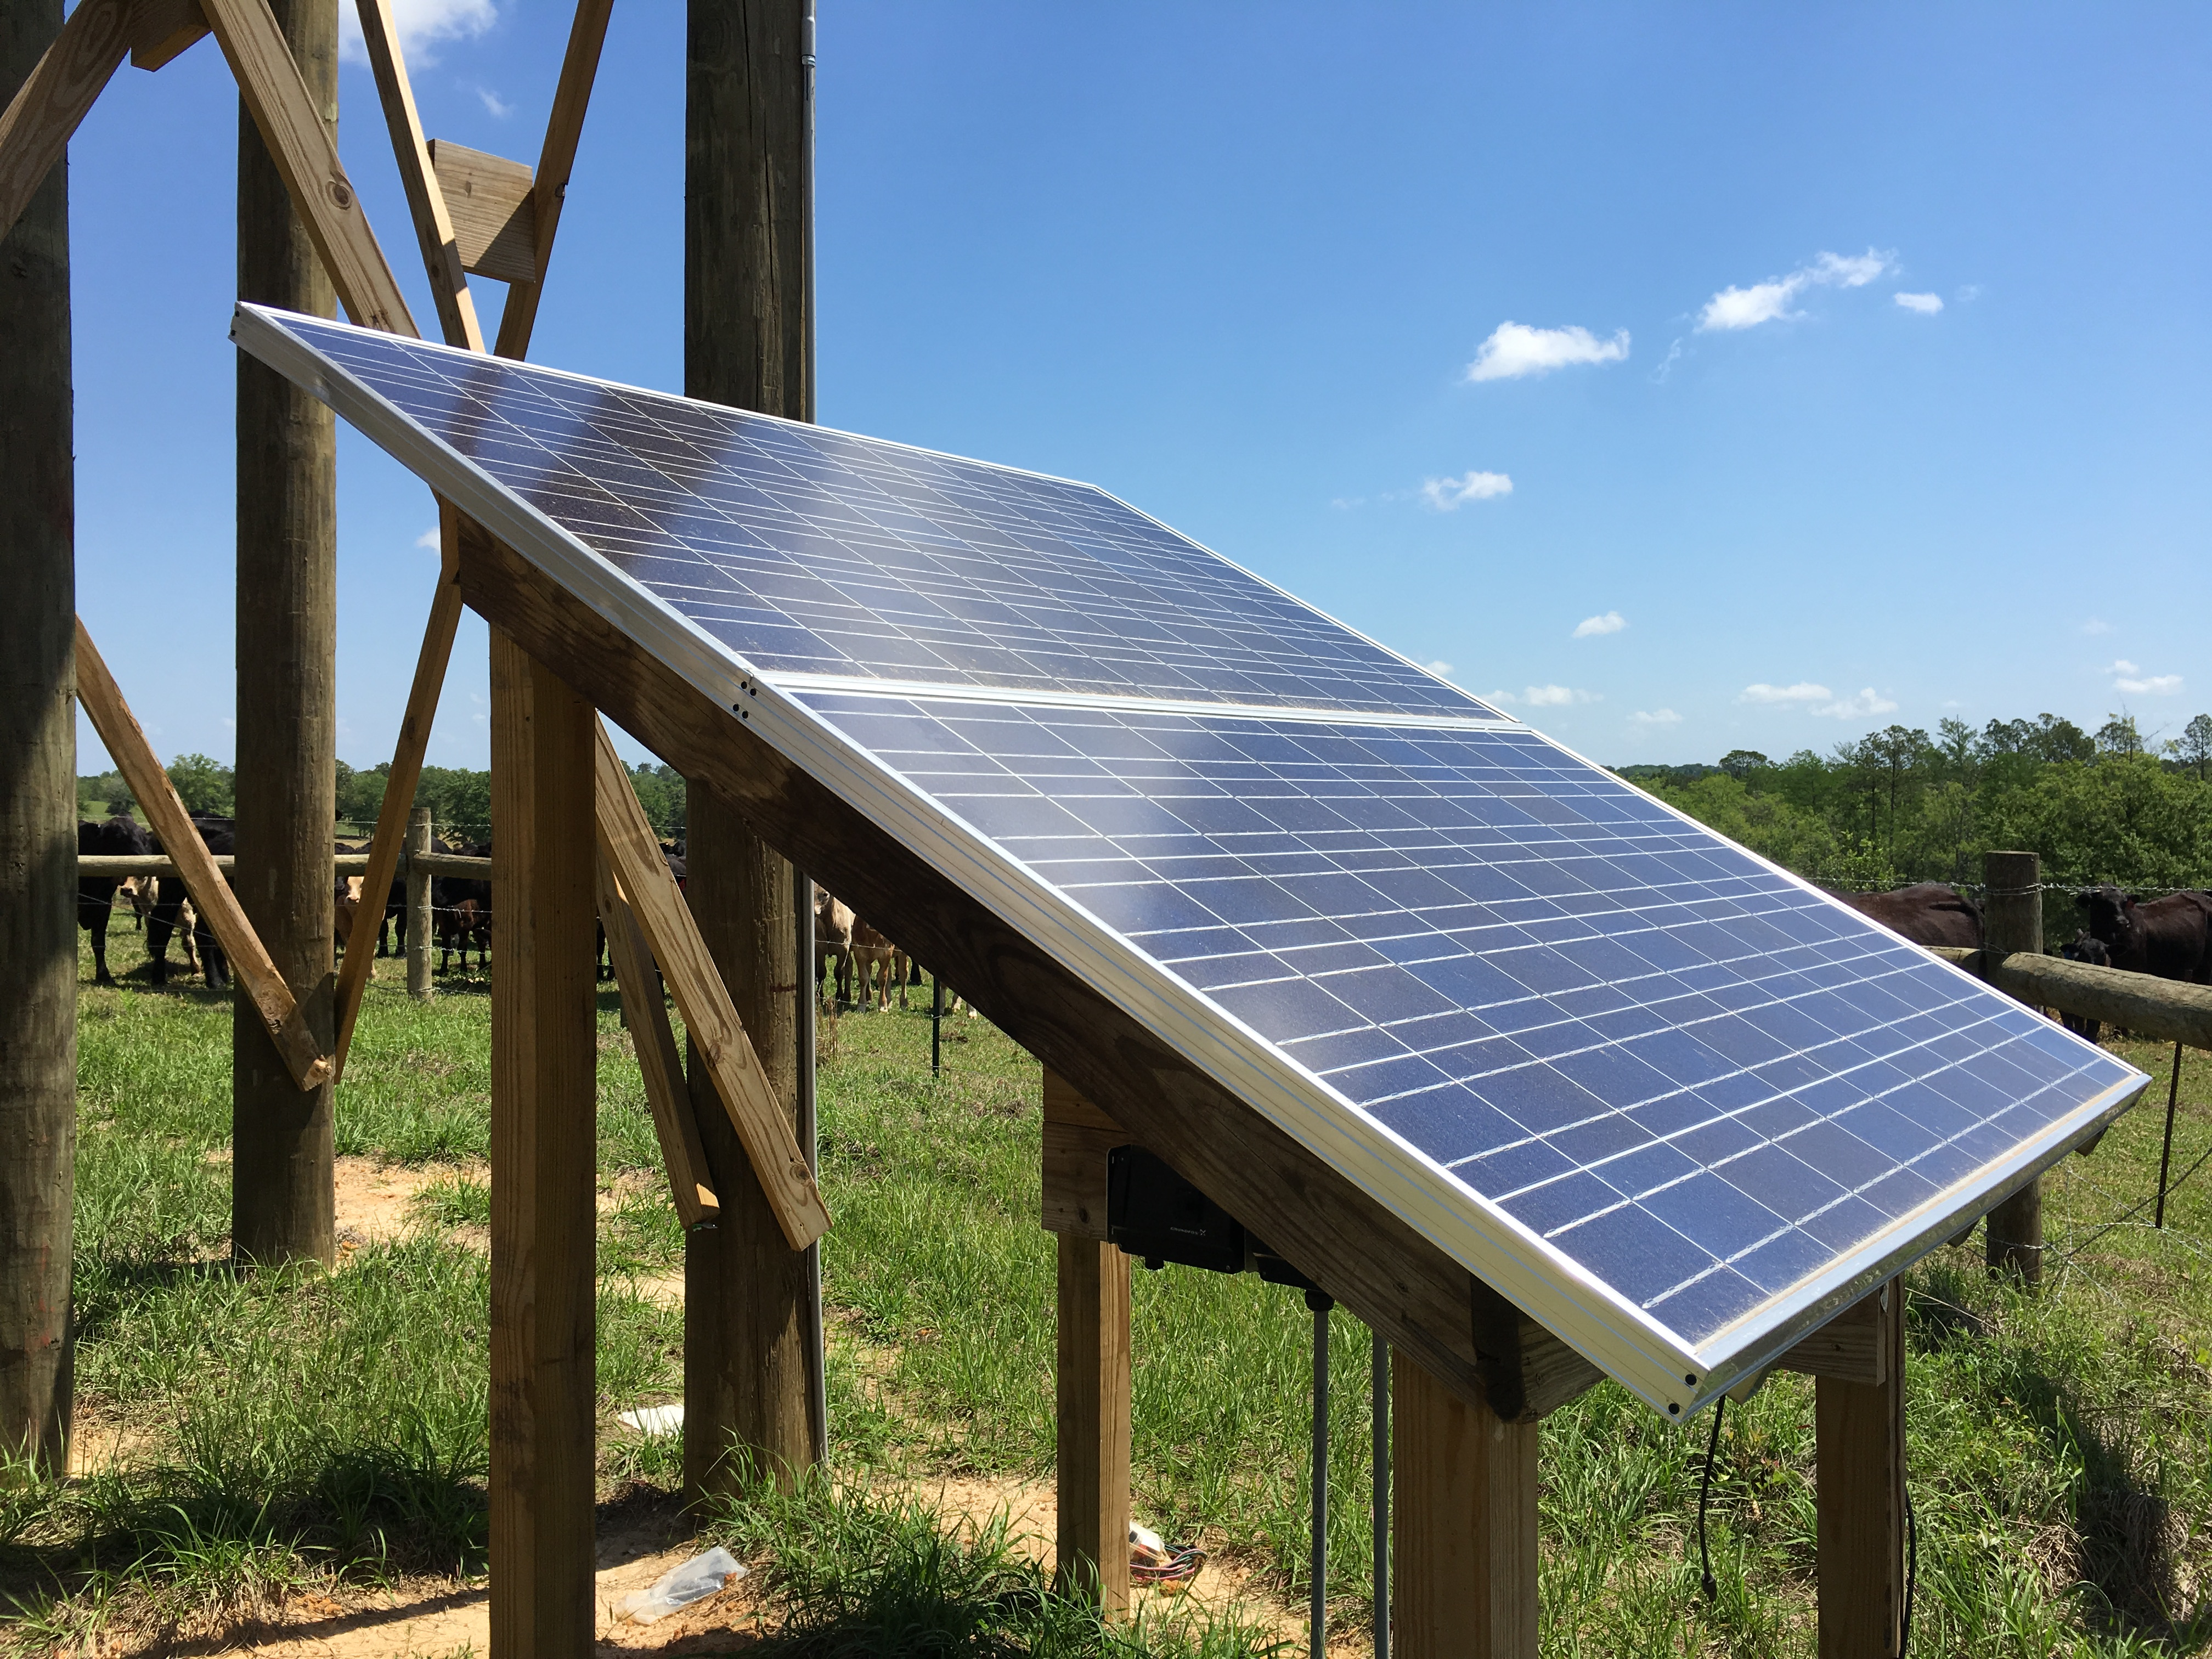 Using Solar Energy to Pump Water for Livestock